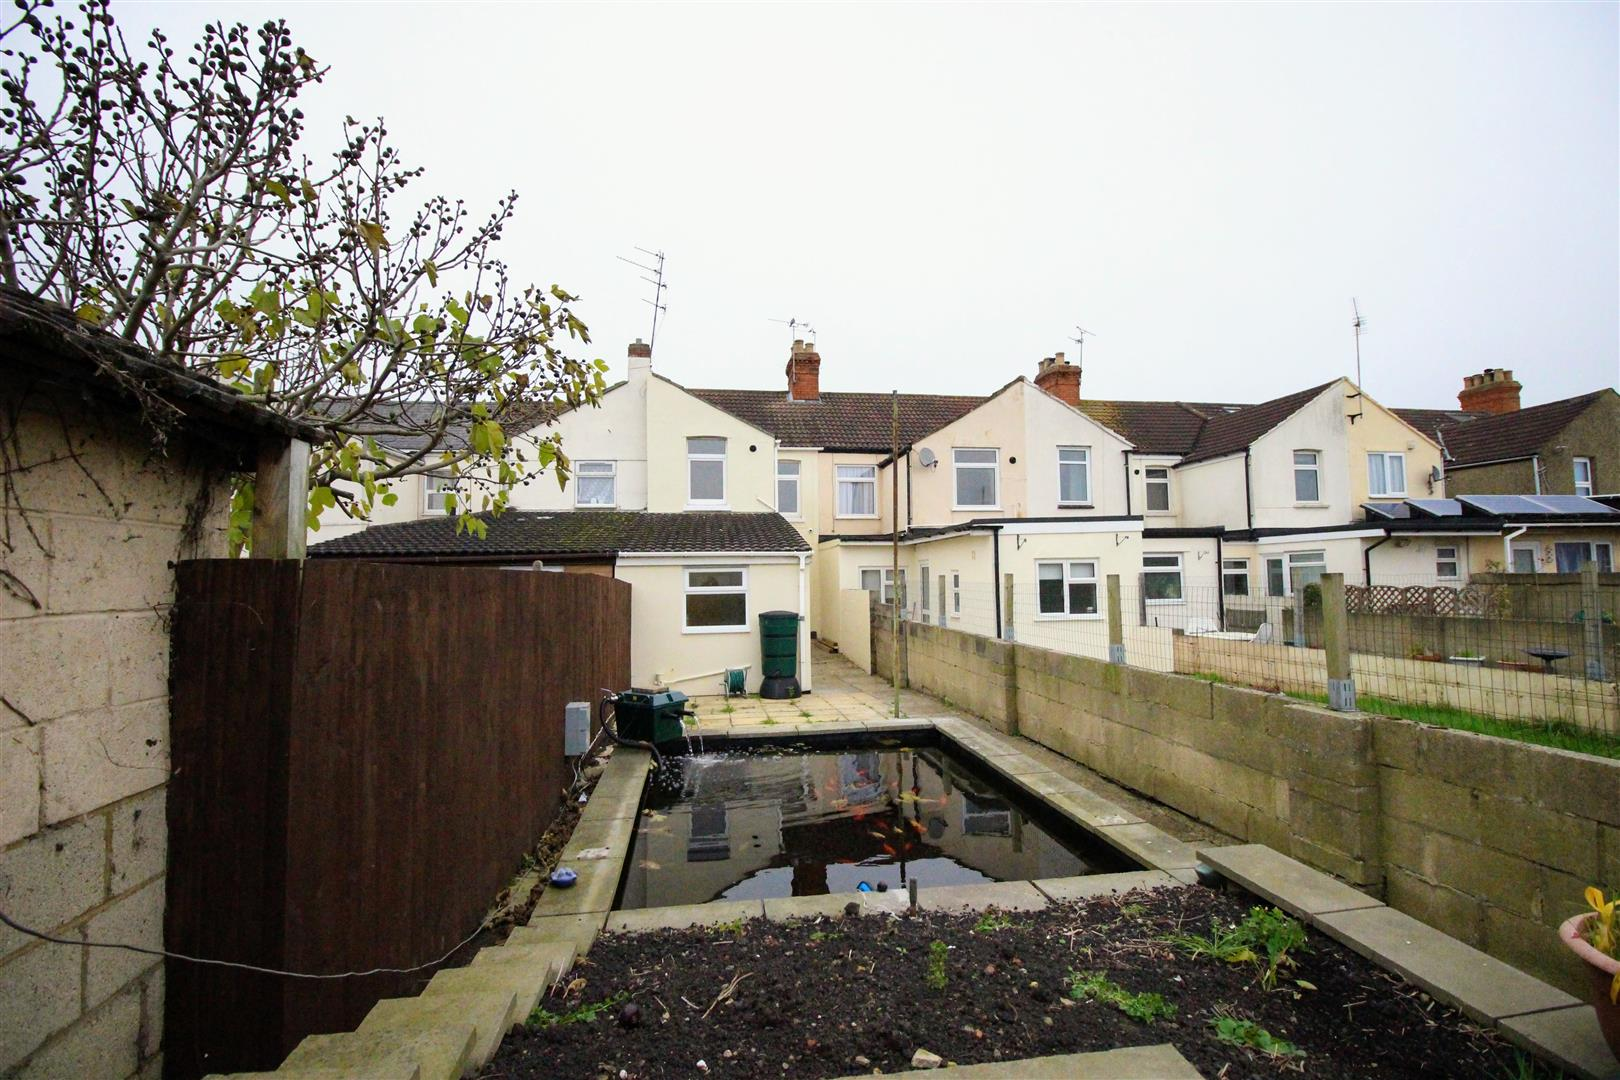 3 Bedrooms Terraced House for sale in Ferndale Road, Gorse Hill, Swindon